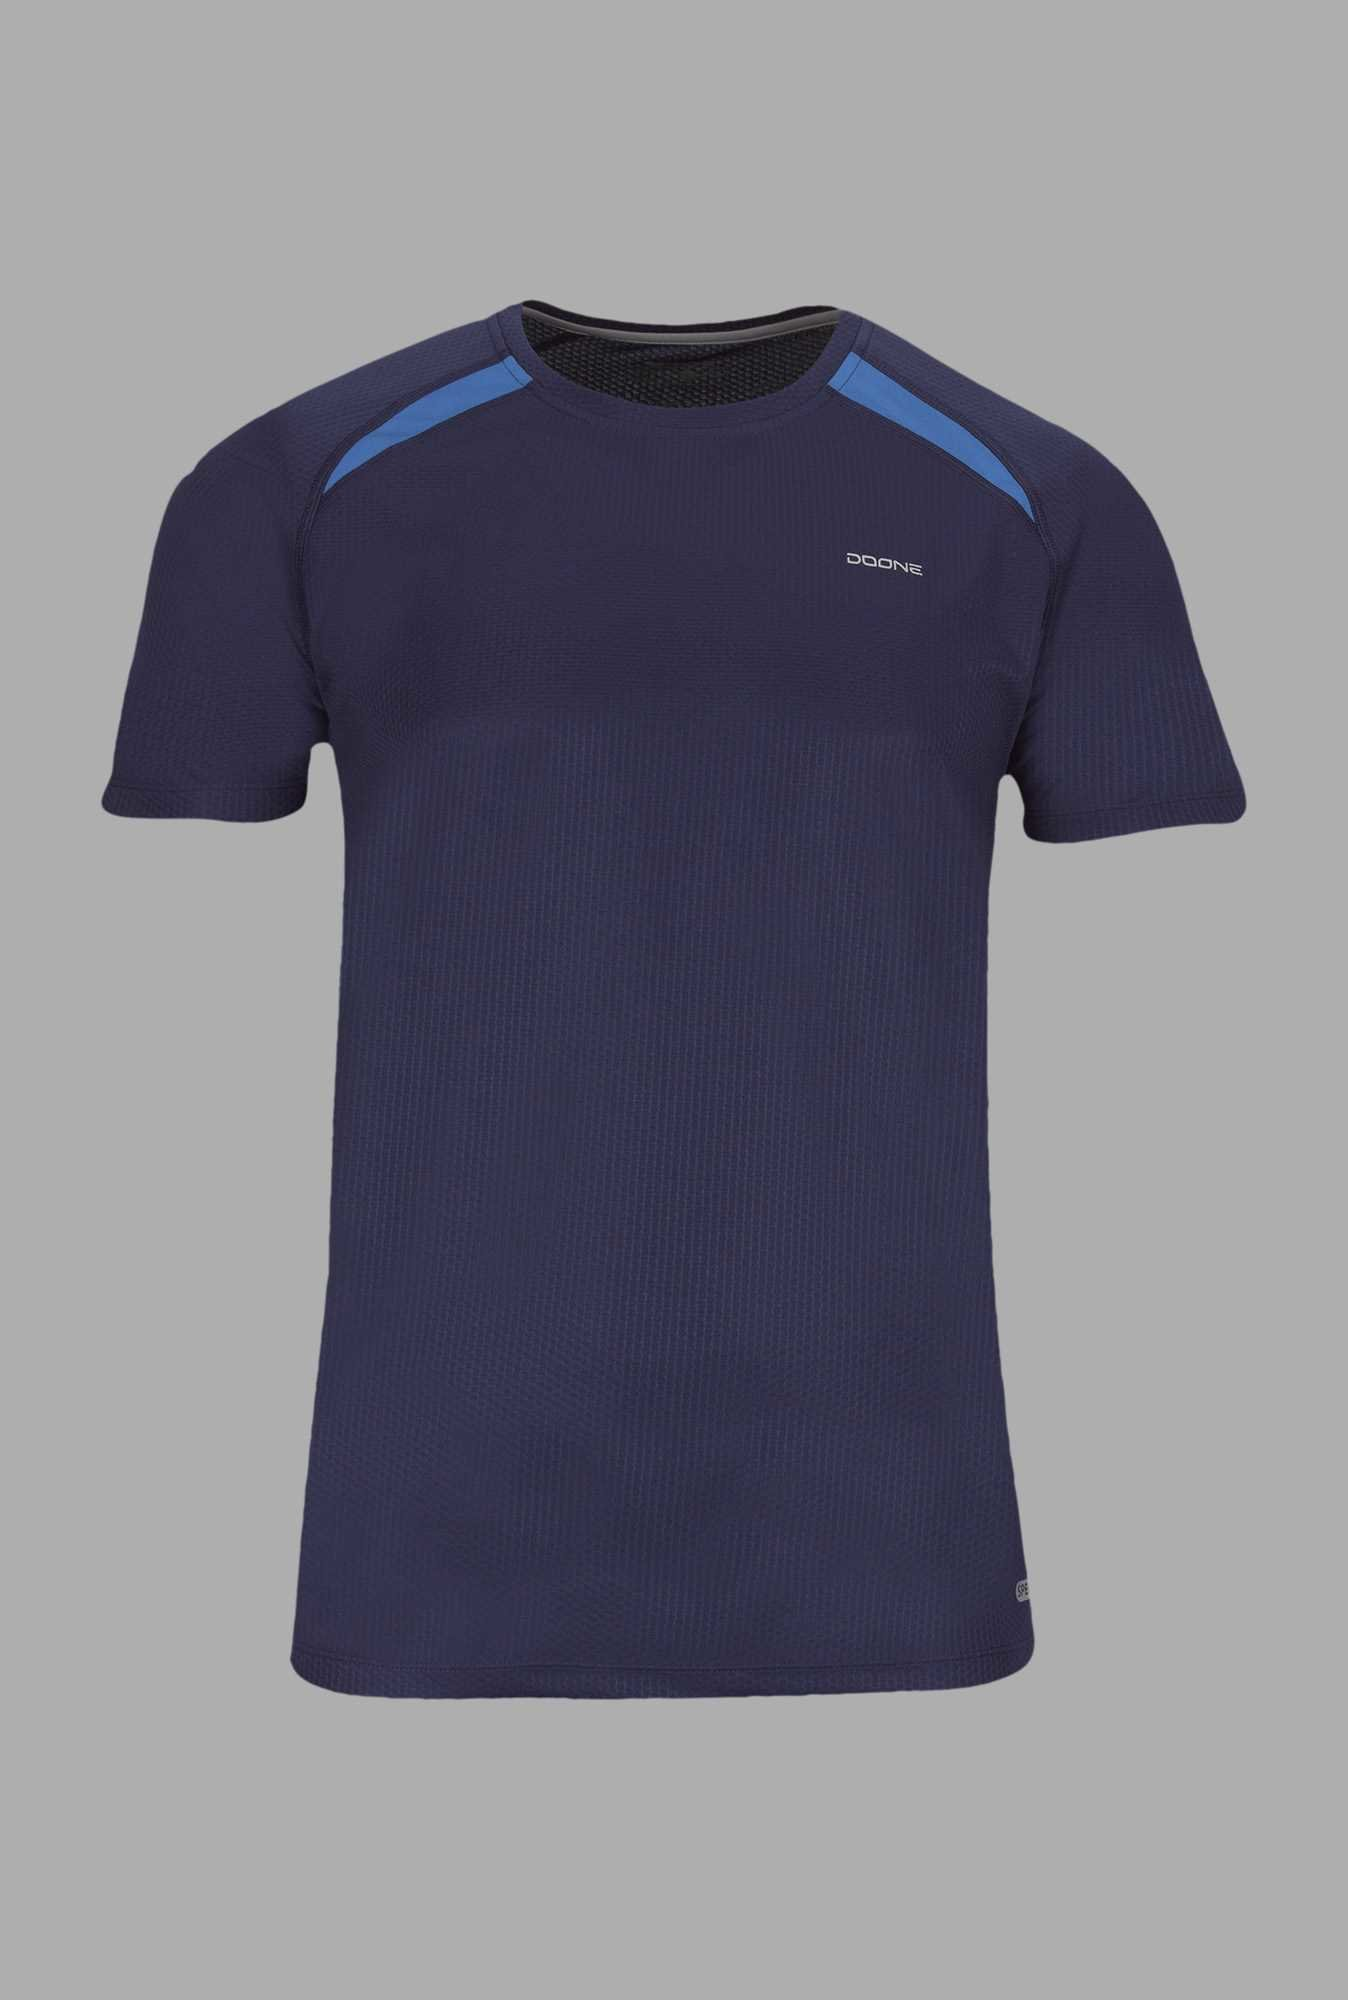 Doone Navy Training T Shirt